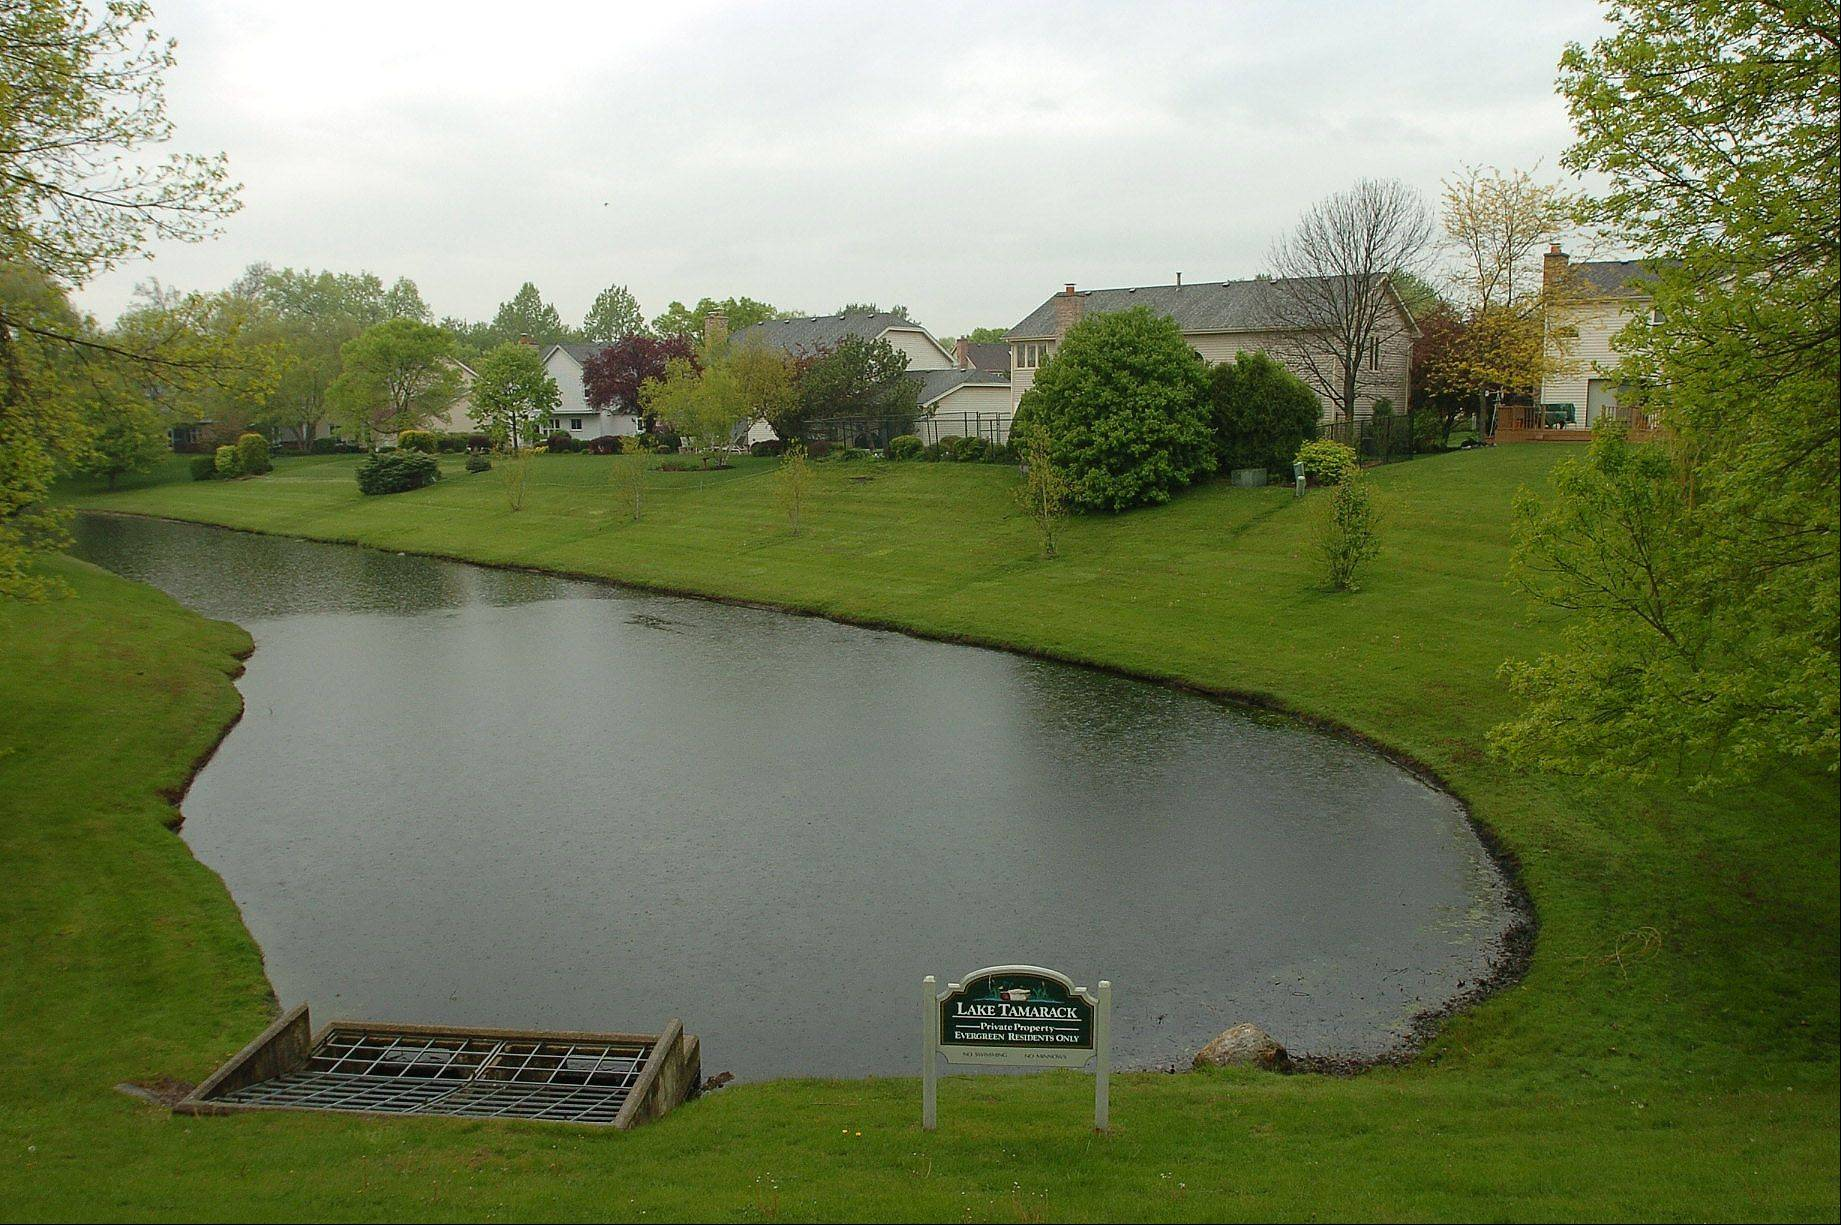 The five-acre Lake Tamarack is located within the Evergreen neighborhood.